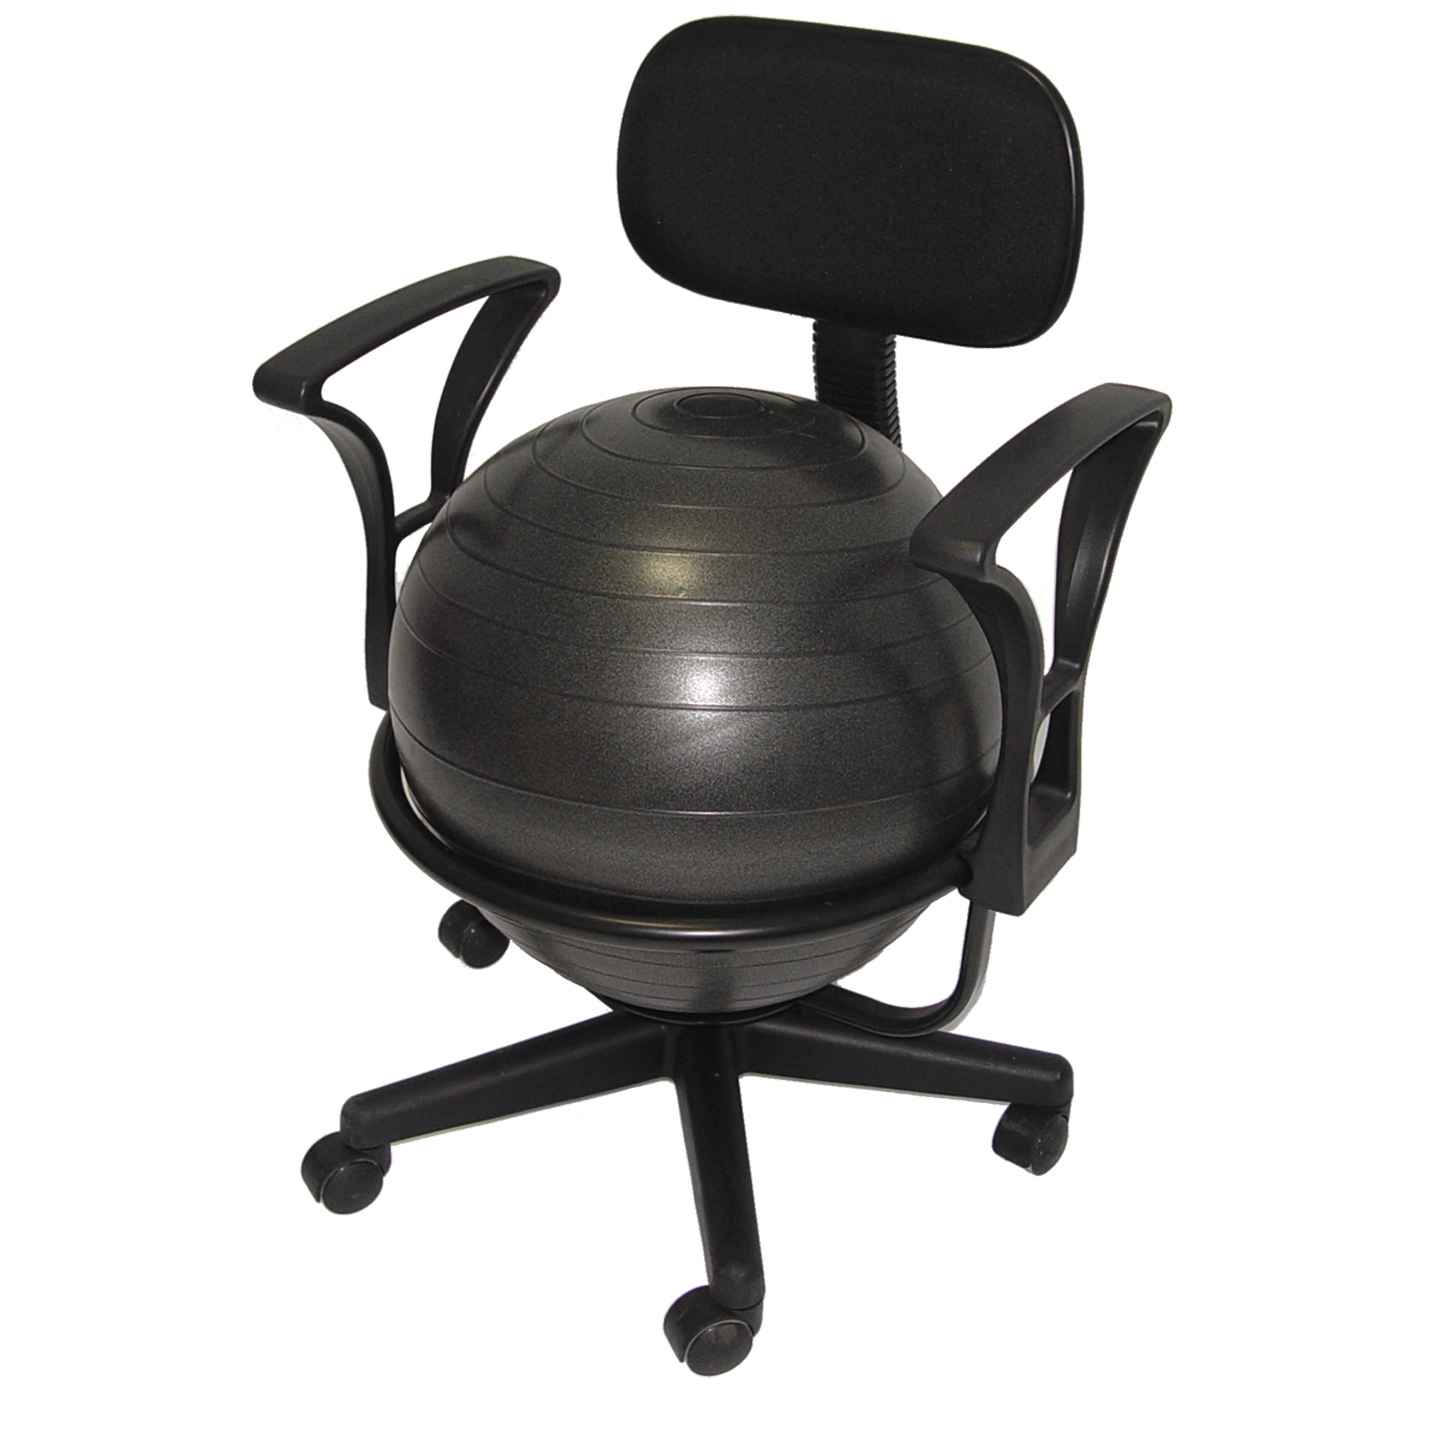 amazon gym ball chair reclining barber ergo for home office